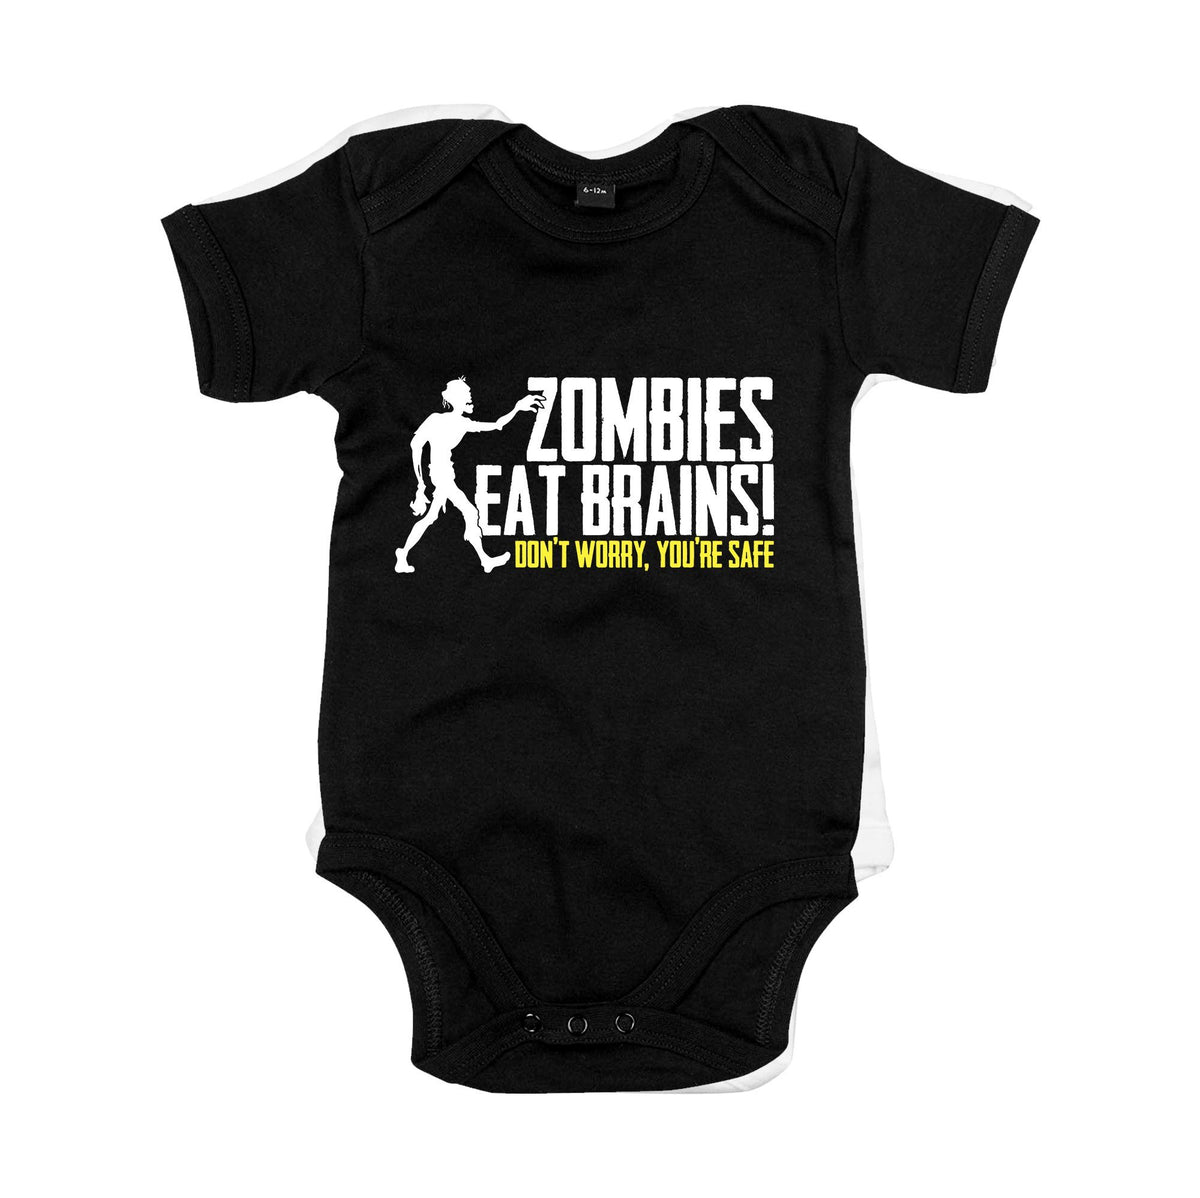 Zombies Eat Brains Primate Novelty Baby Vest 0-3 Months